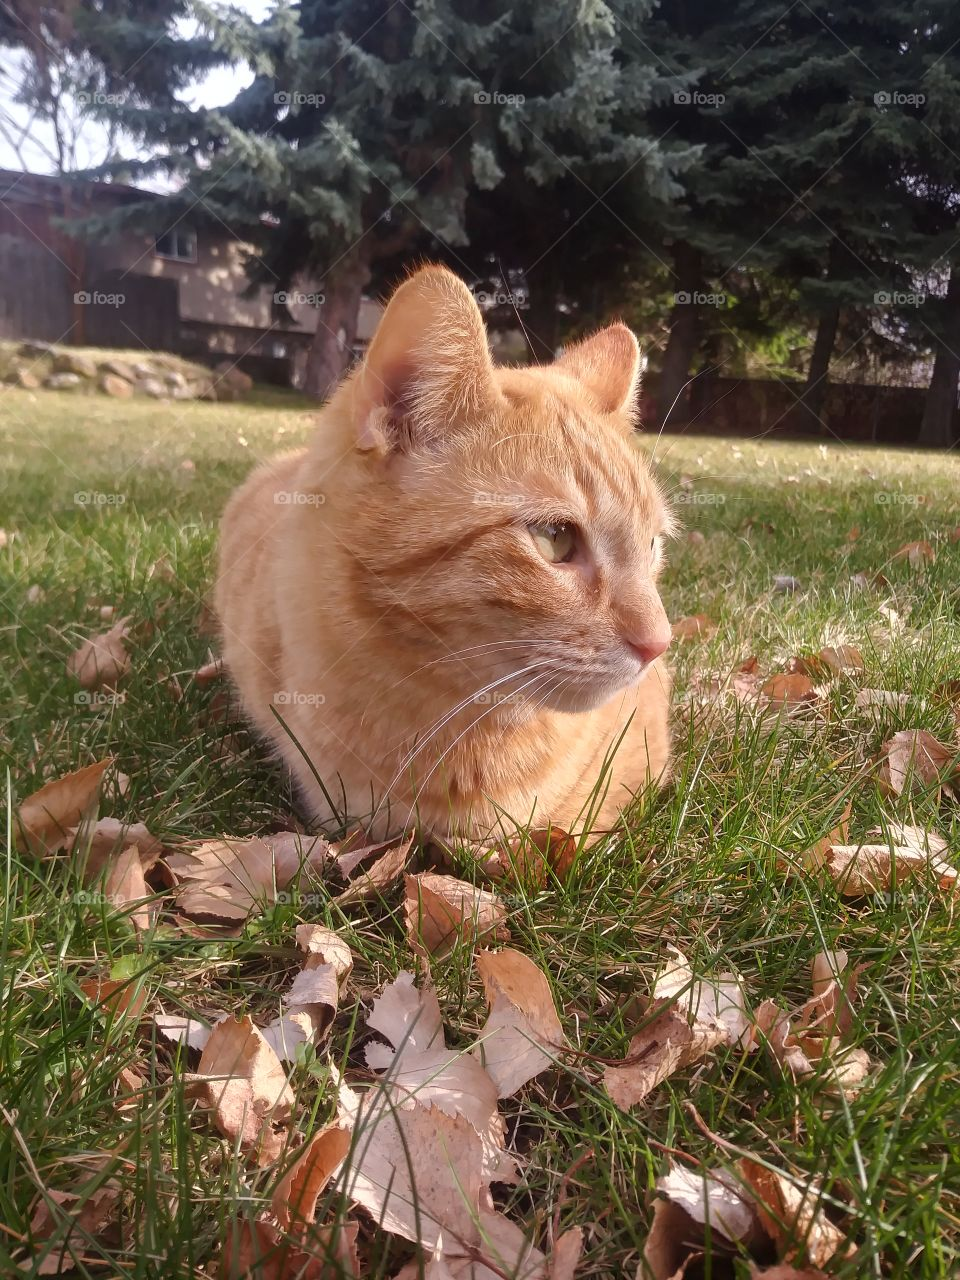 An orange cat named Butterbean in the grass 🐈